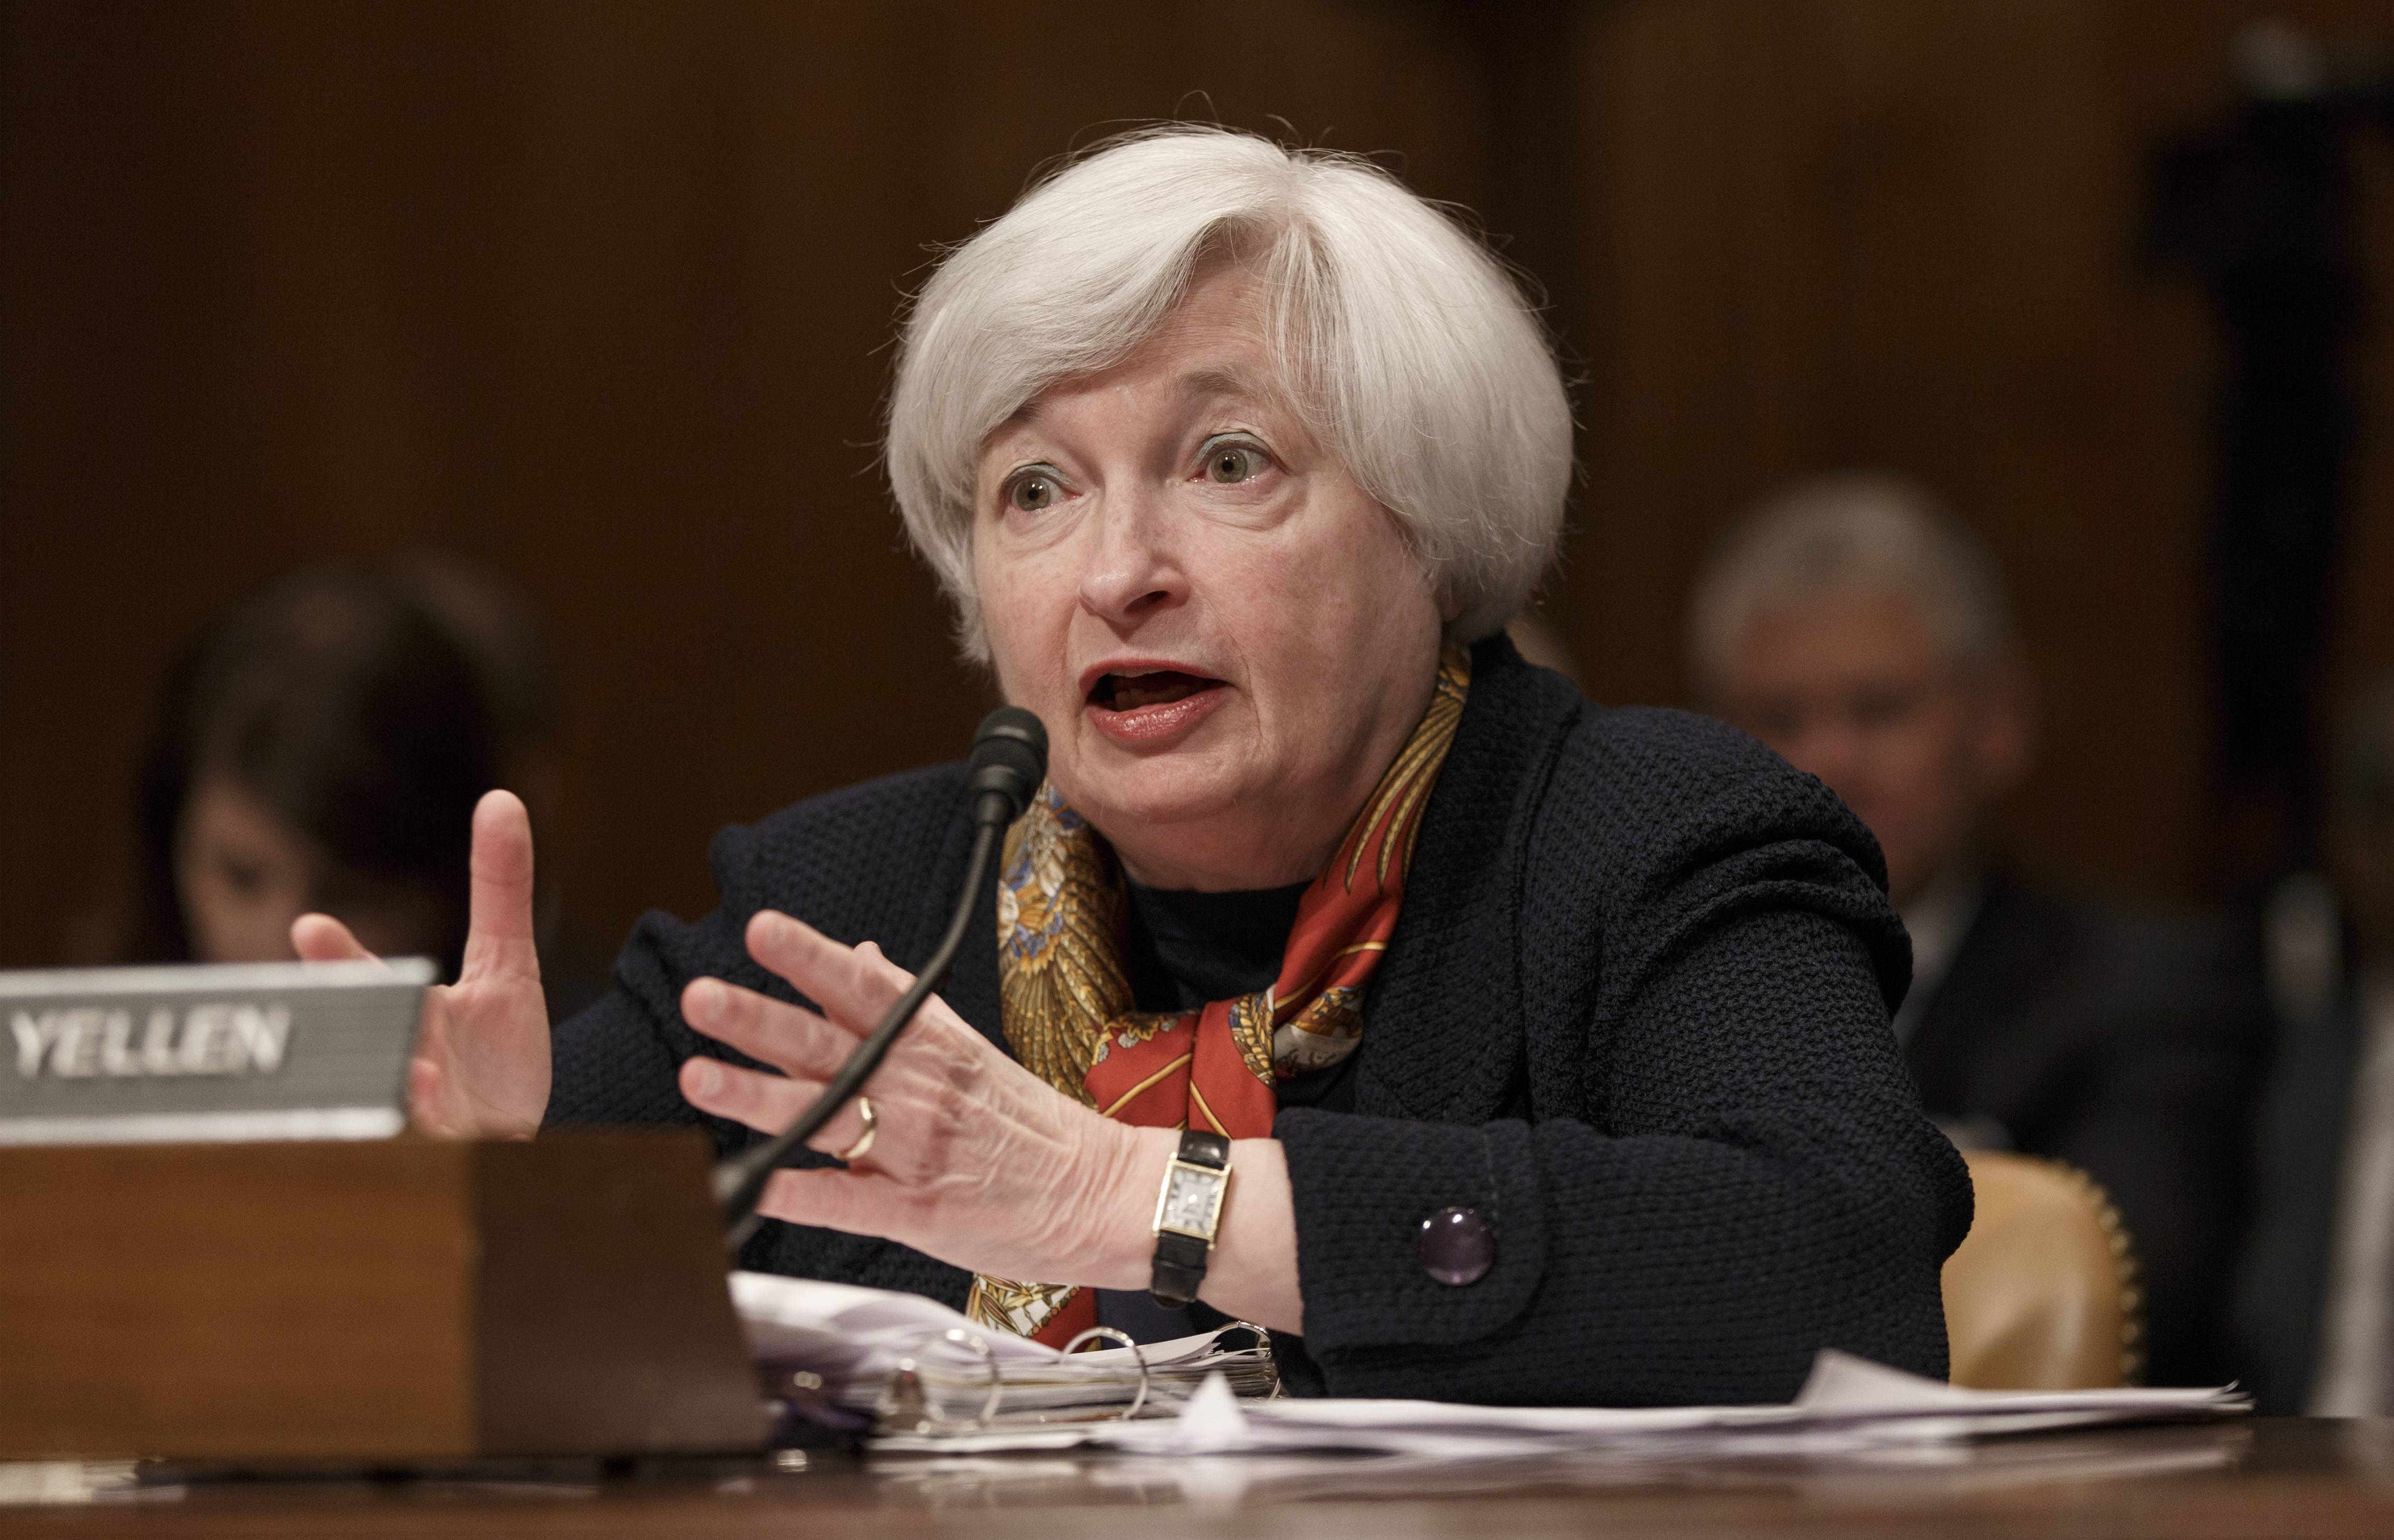 This week's Federal Reserve meeting is the third at which Janet Yellen will preside as chair since succeeding Ben Bernanke in February.